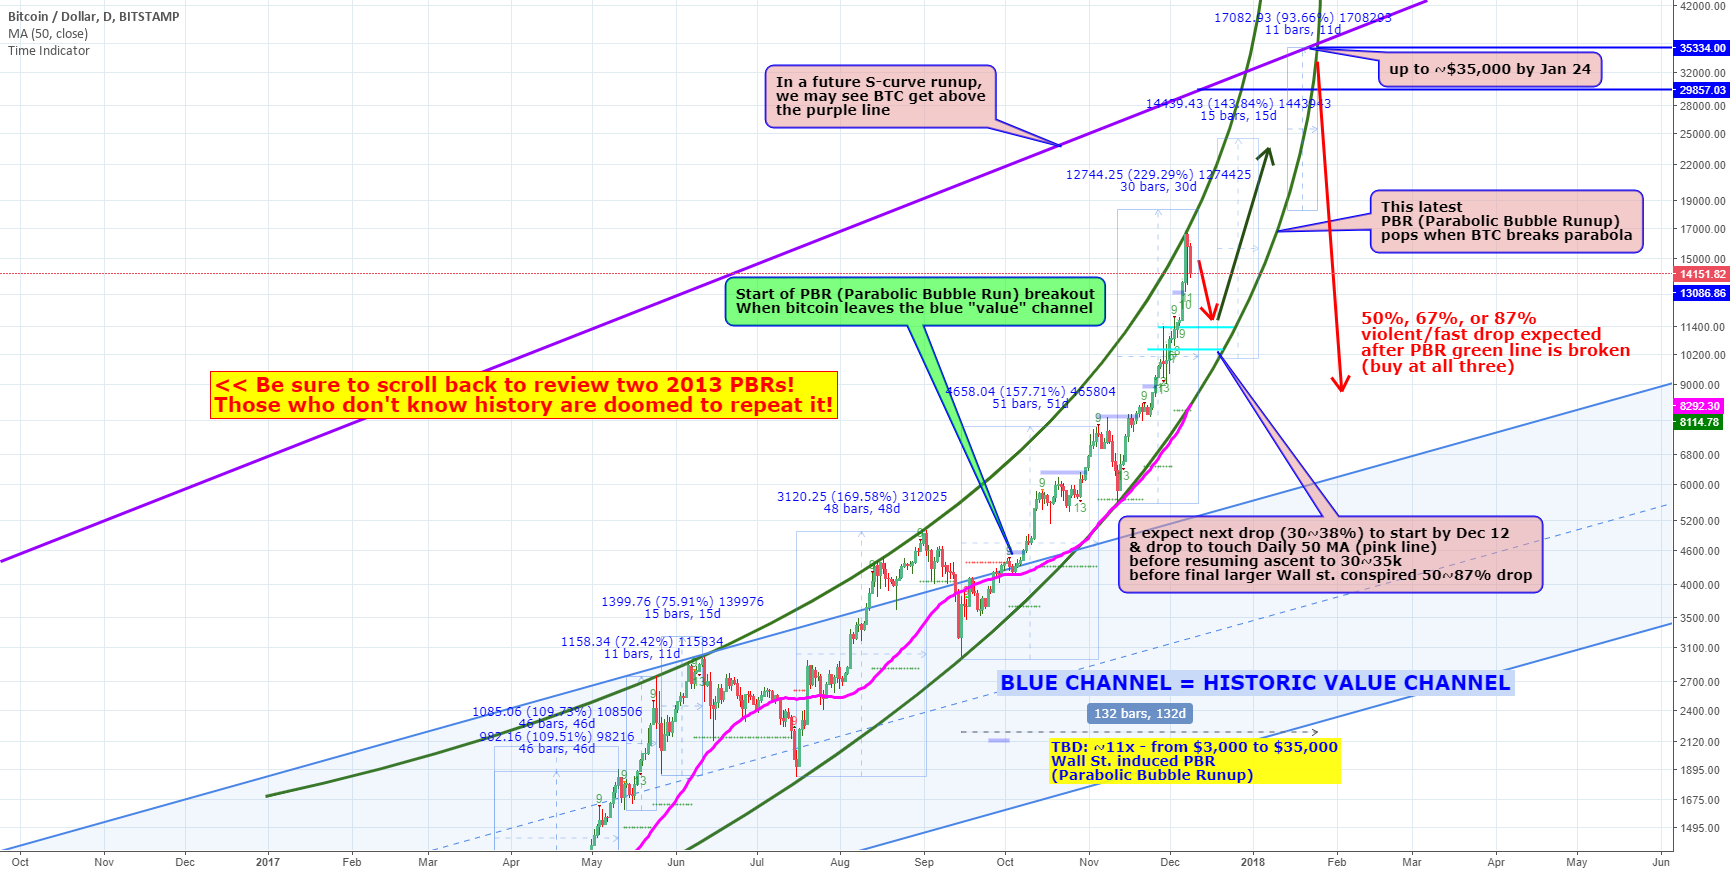 Dec 9 bitcoin (BTC) Parabolic Bubble Run forecast w/2013 data